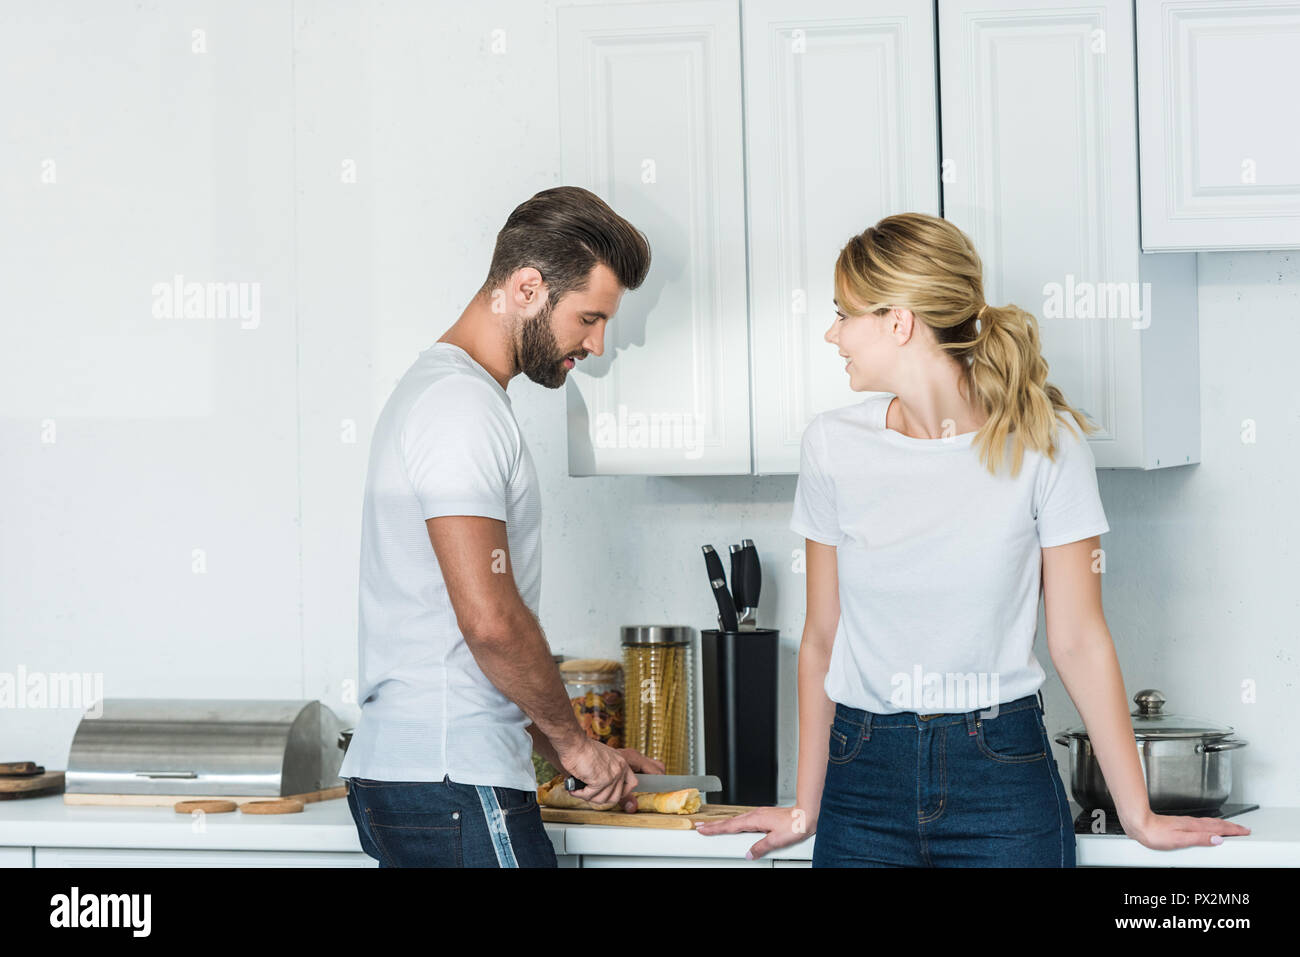 beautiful young woman looking at boyfriend cutting baguette in kitchen - Stock Image